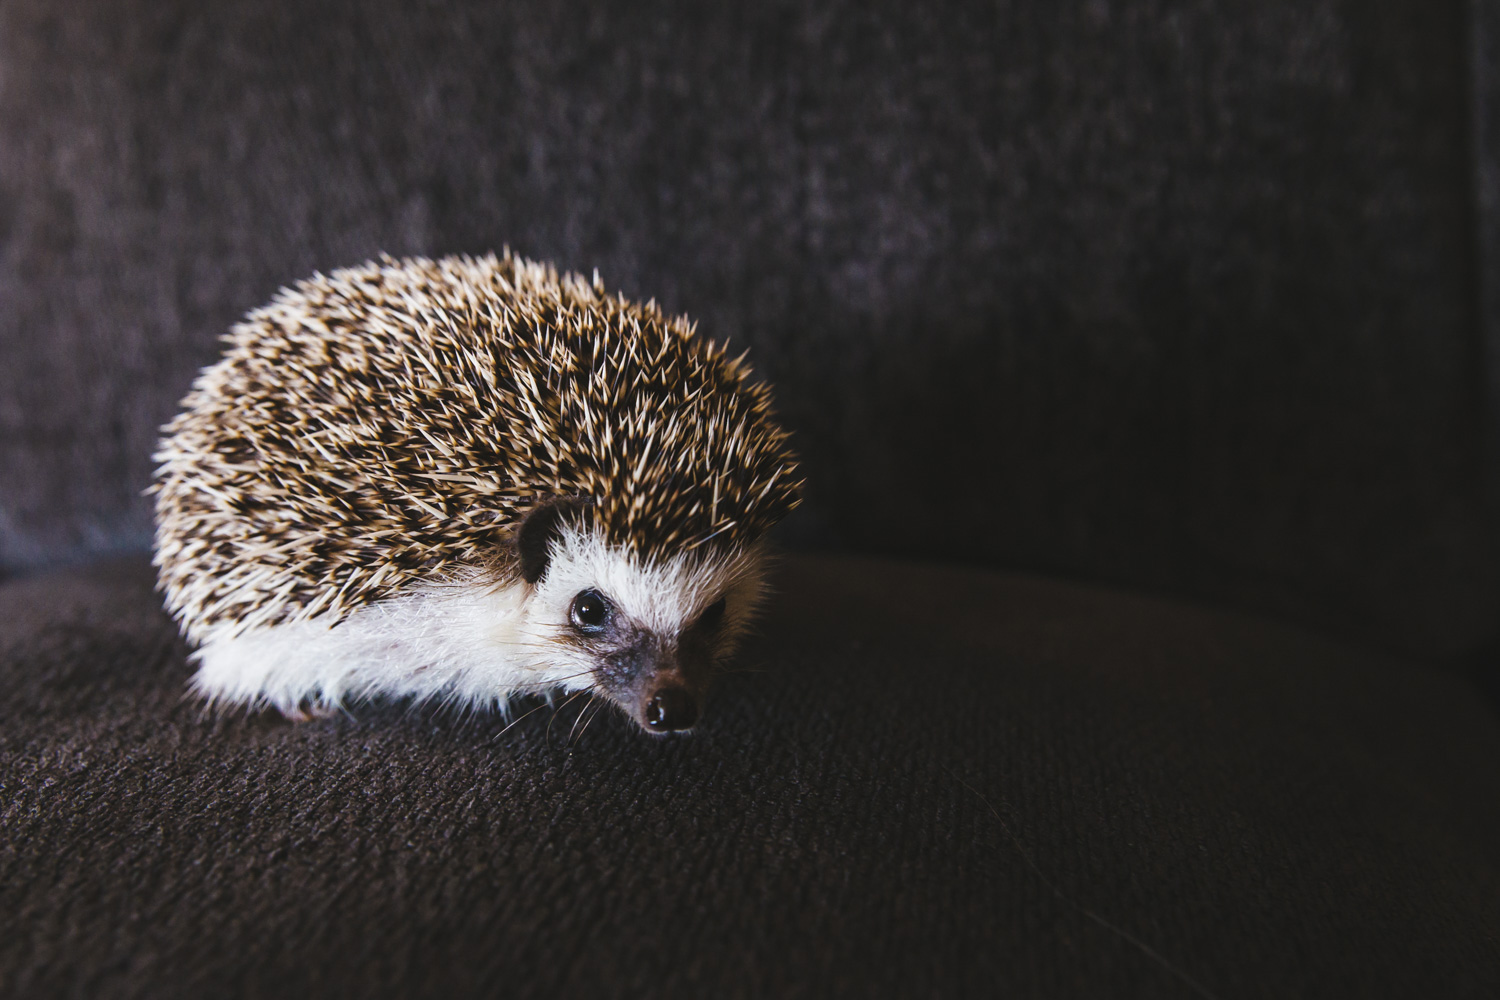 We've had dogs. We've had cats. Heck, we've even had birds! We haven't yet had a hedgehog so this is a HUGE day at RUFFined! Meet Pip the African Pygmy Hedgehog. Pip is one and can be described as a &quot;quill potato.&quot; Pip has been one adventurous hedgehog, exploring the PNW with his parents - from ferry trips to hikes to pumpkin patches! Pip likes running on his wheel, mealworms, destroying cat toys, forehead rubs and playing in the grass. Pip dislikes baths, daylight, strangers, loud noises, belly rubs and being on a diet. You can follow along with Pip on instagram, @pip.thehedgehog.{&amp;nbsp;}The Seattle RUFFined Spotlight is a weekly profile of local pets living and loving life in the PNW. If you or someone you know has a pet you'd like featured, email us at hello@seattlerefined.com or tag #SeattleRUFFined and your furbaby could be the next spotlighted! (Image: Sunita Martini / Seattle Refined).<p></p>